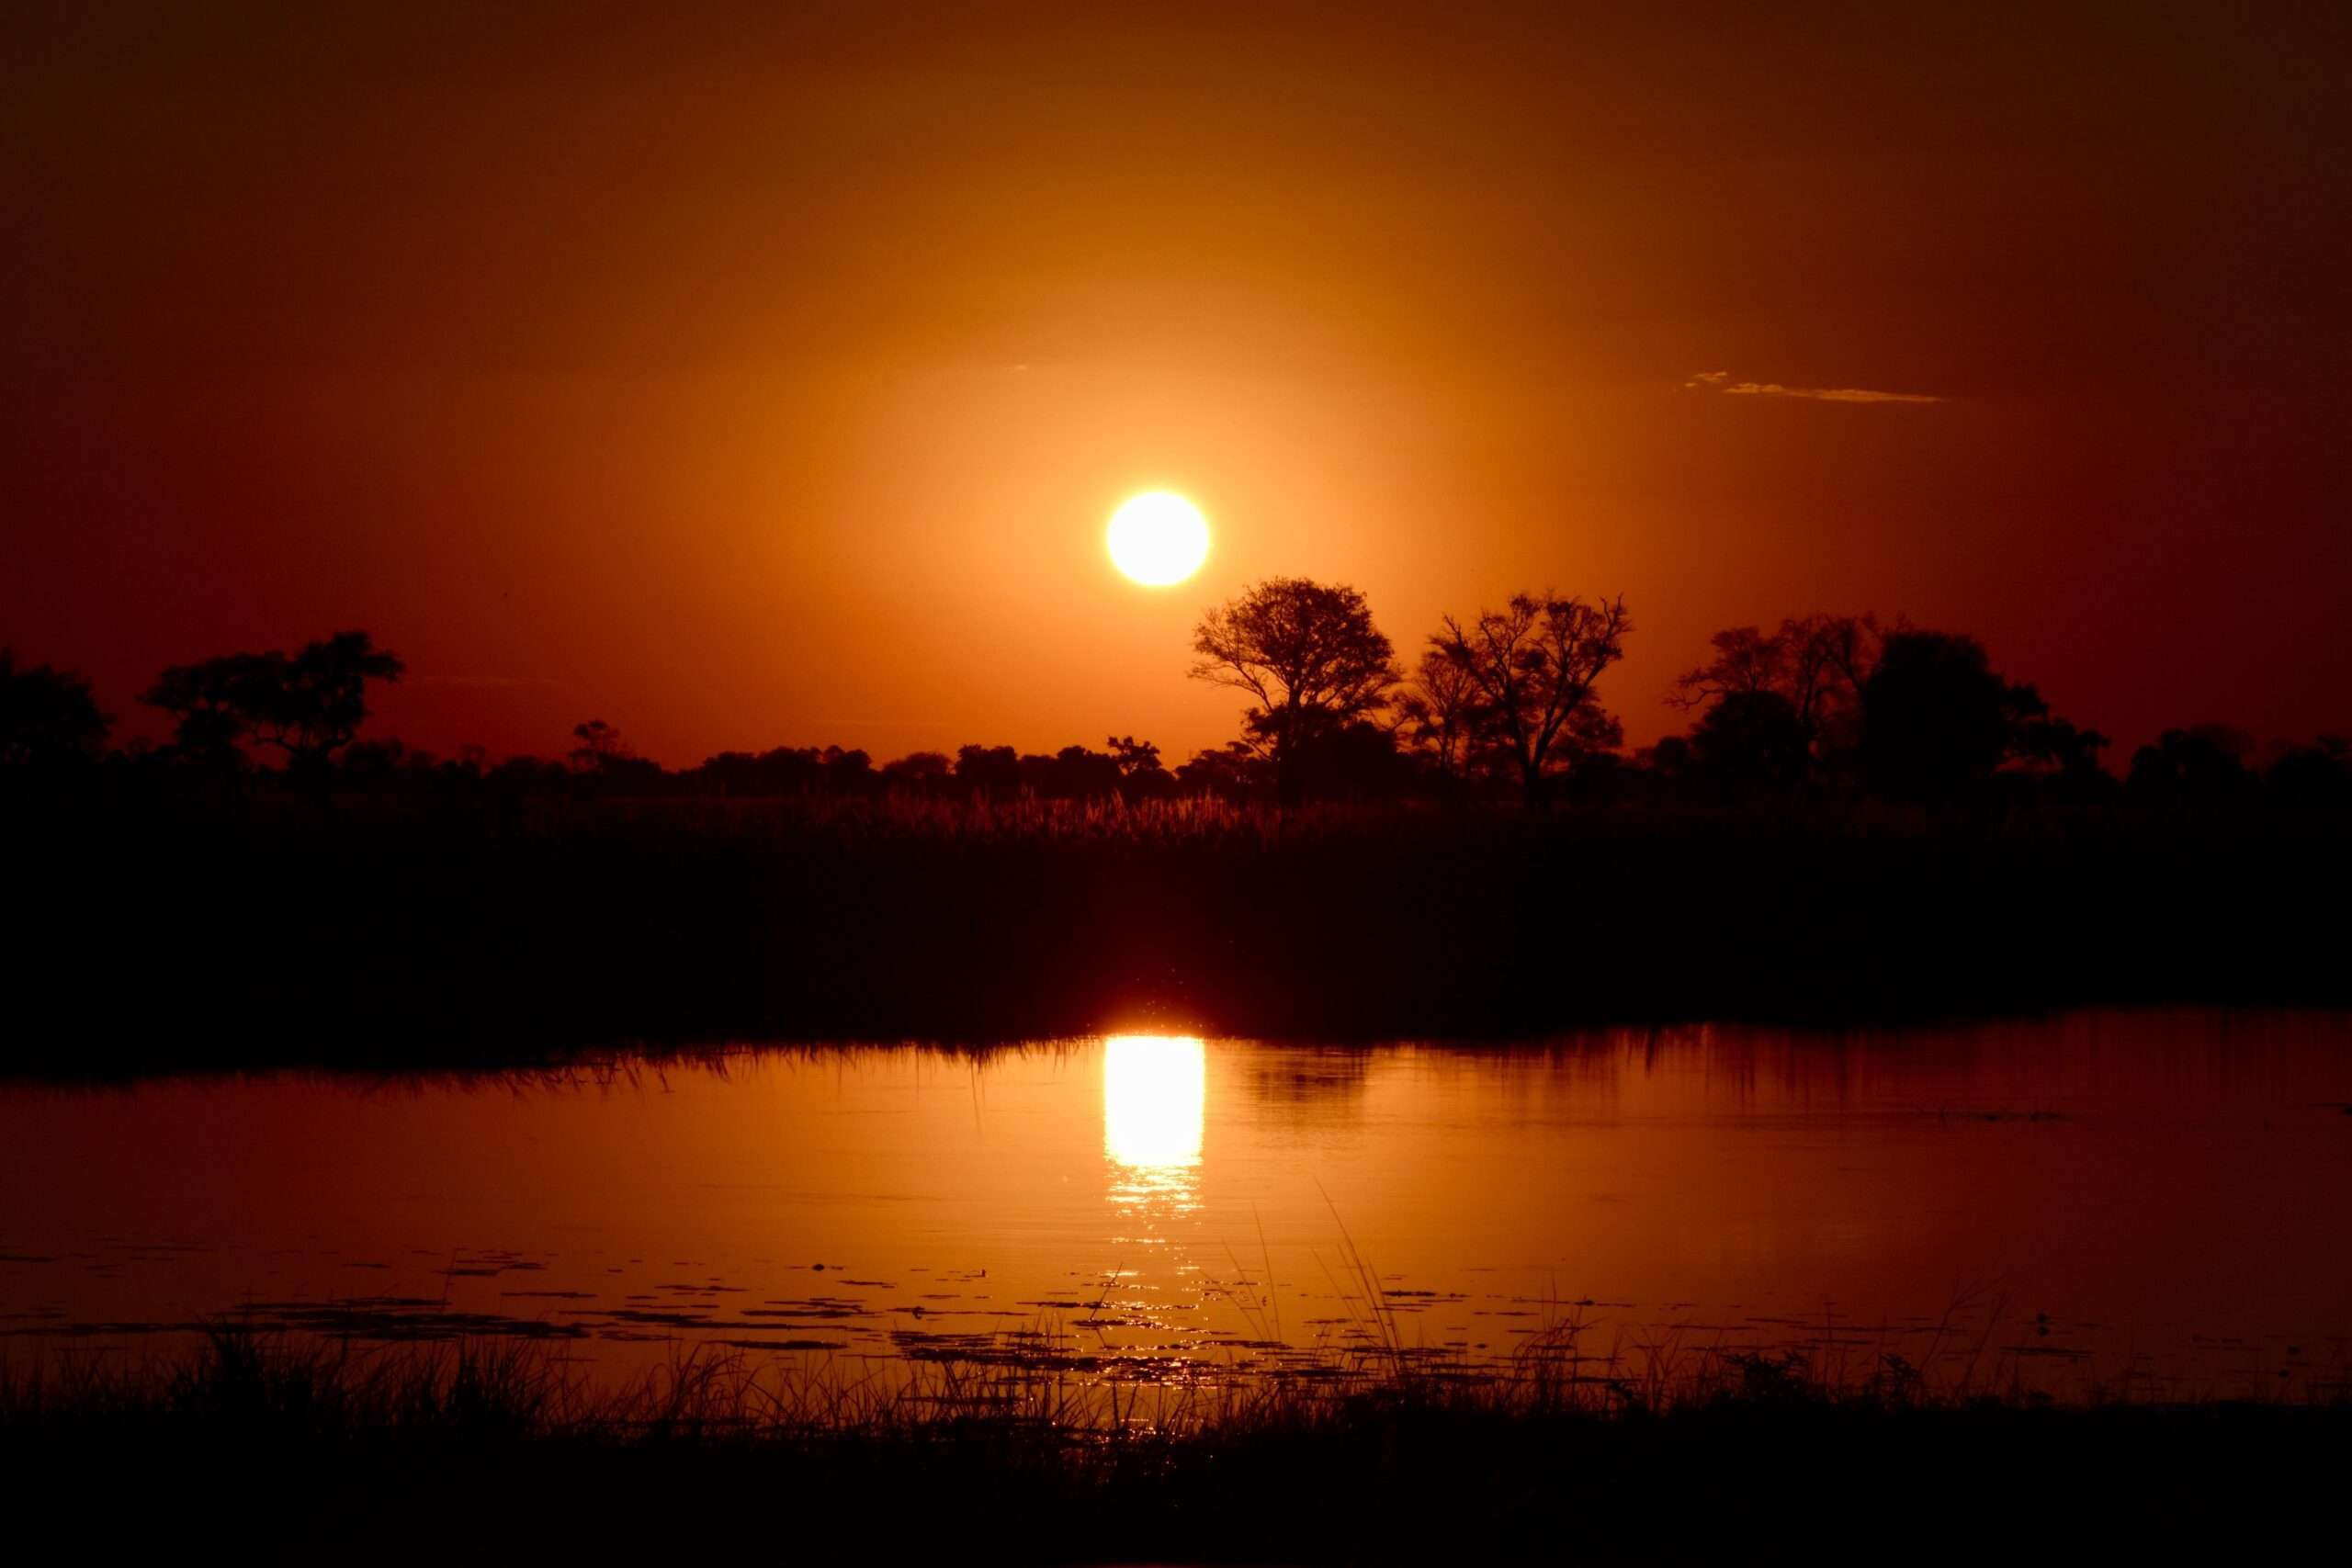 bright red sunset with silhouettes of trees and reflection in the water in the okavango delta